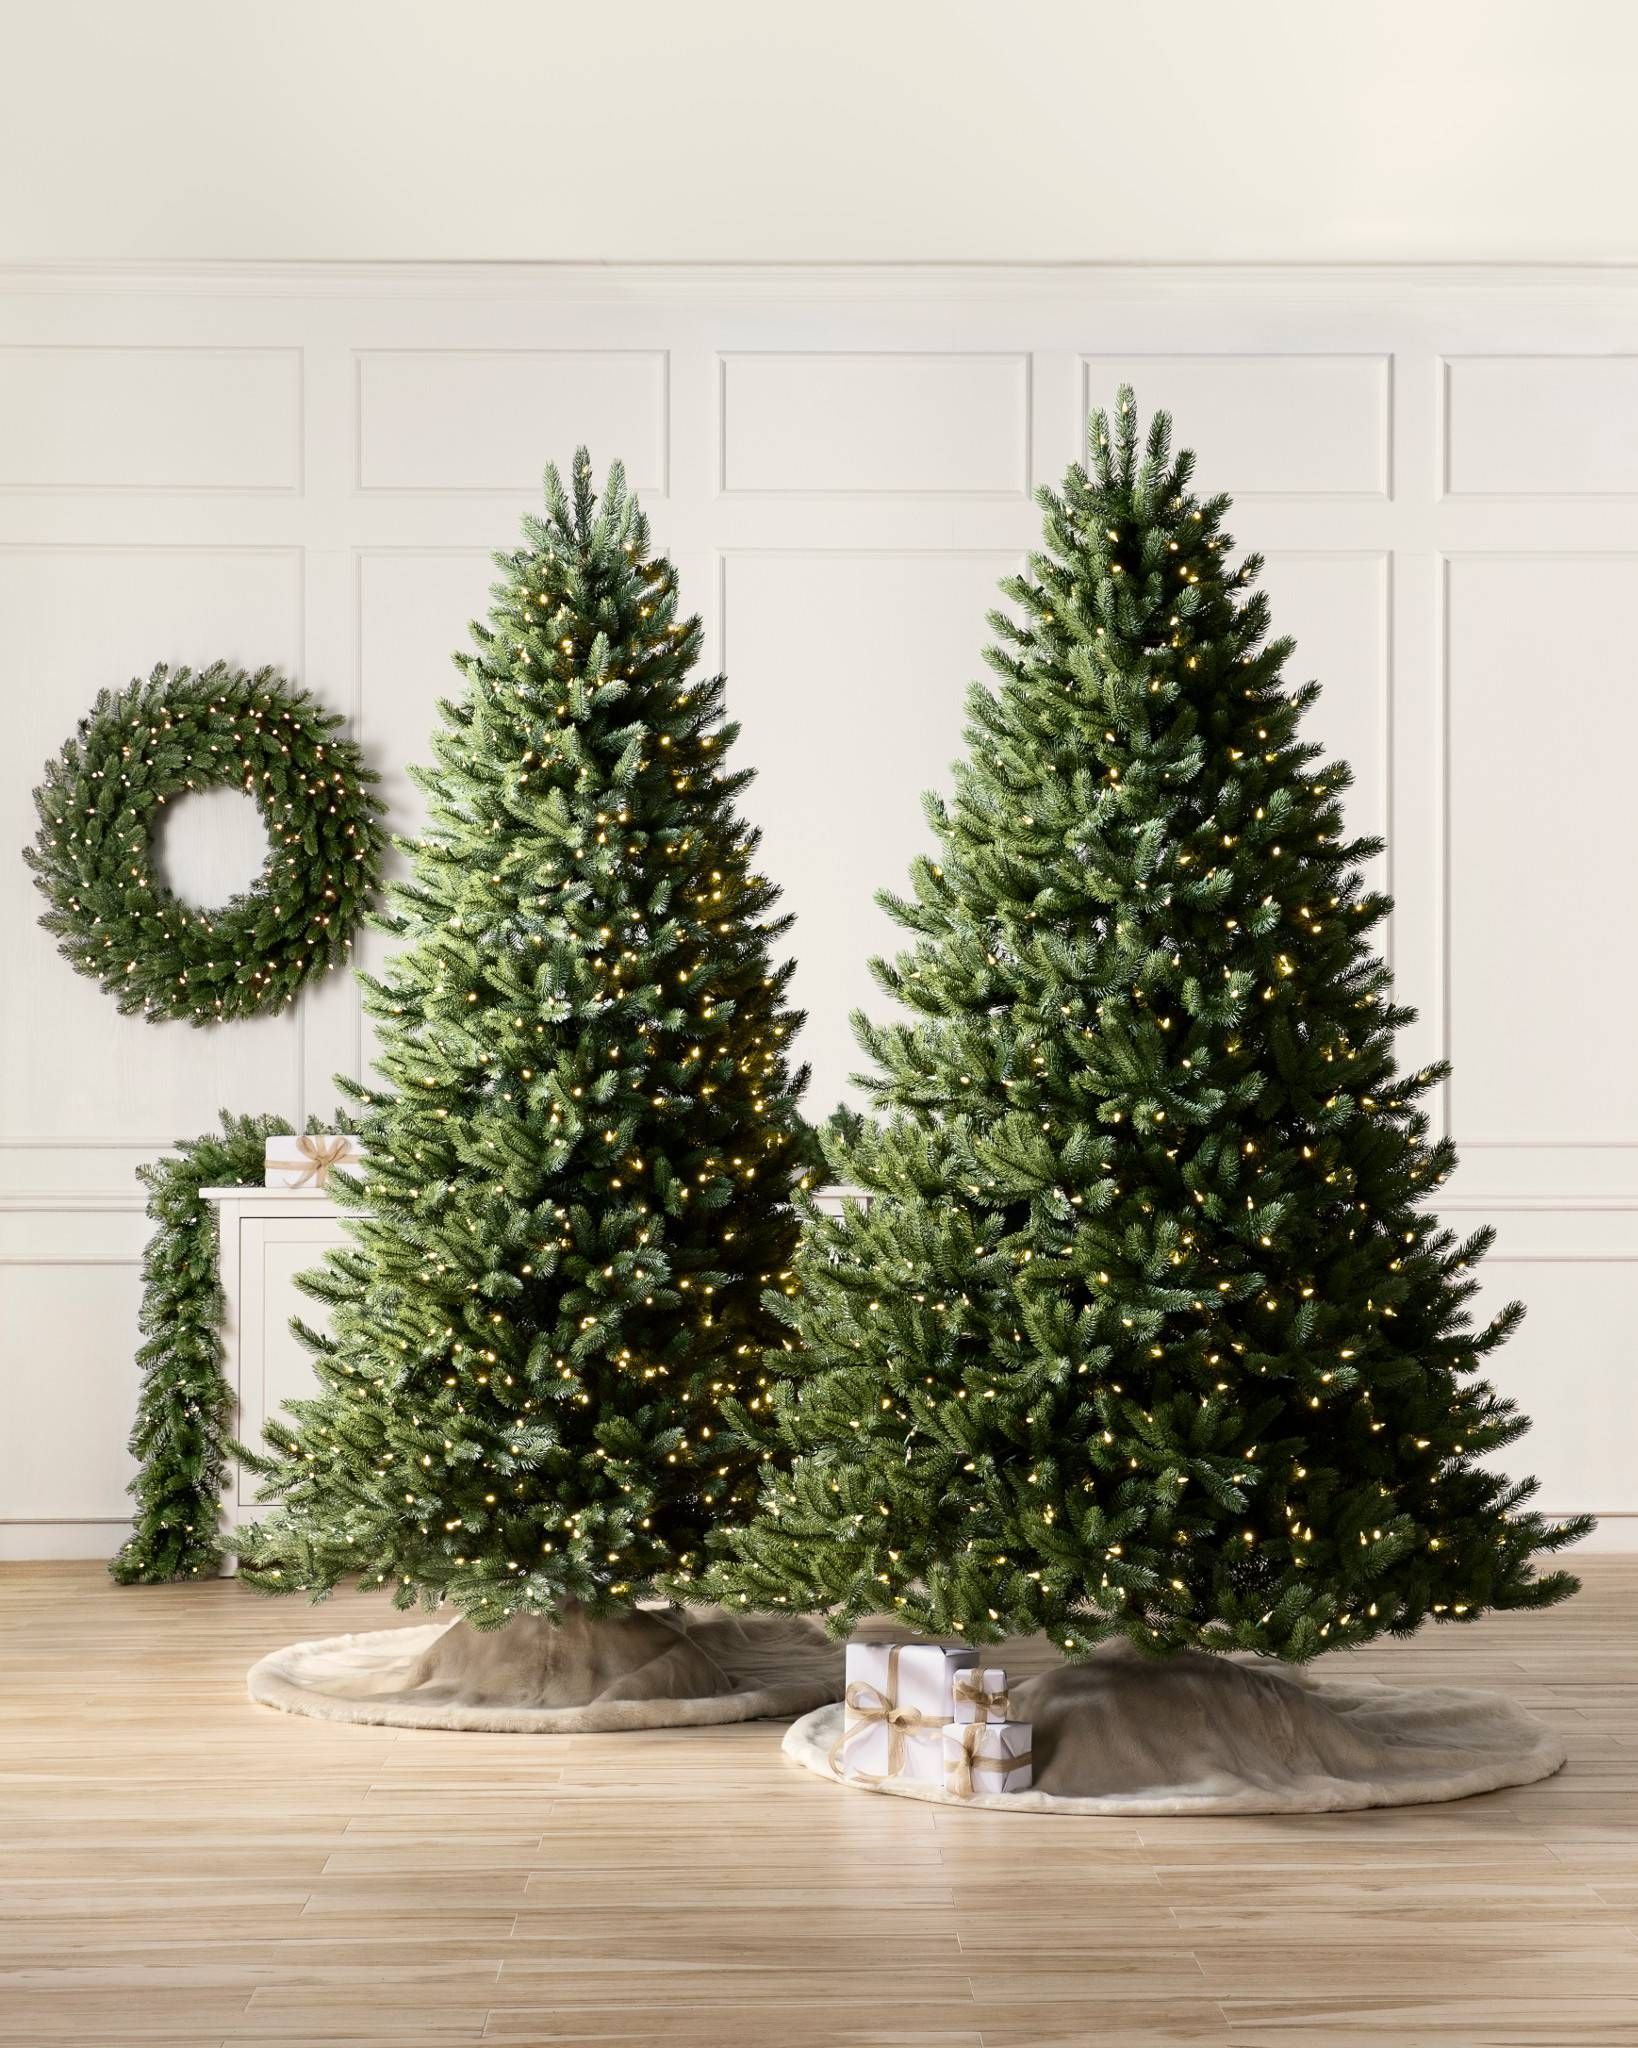 Vermont White Spruce Artificial Christmas Trees Balsam Hill Best Artificial Christmas Trees Realistic Artificial Christmas Trees Christmas Tree